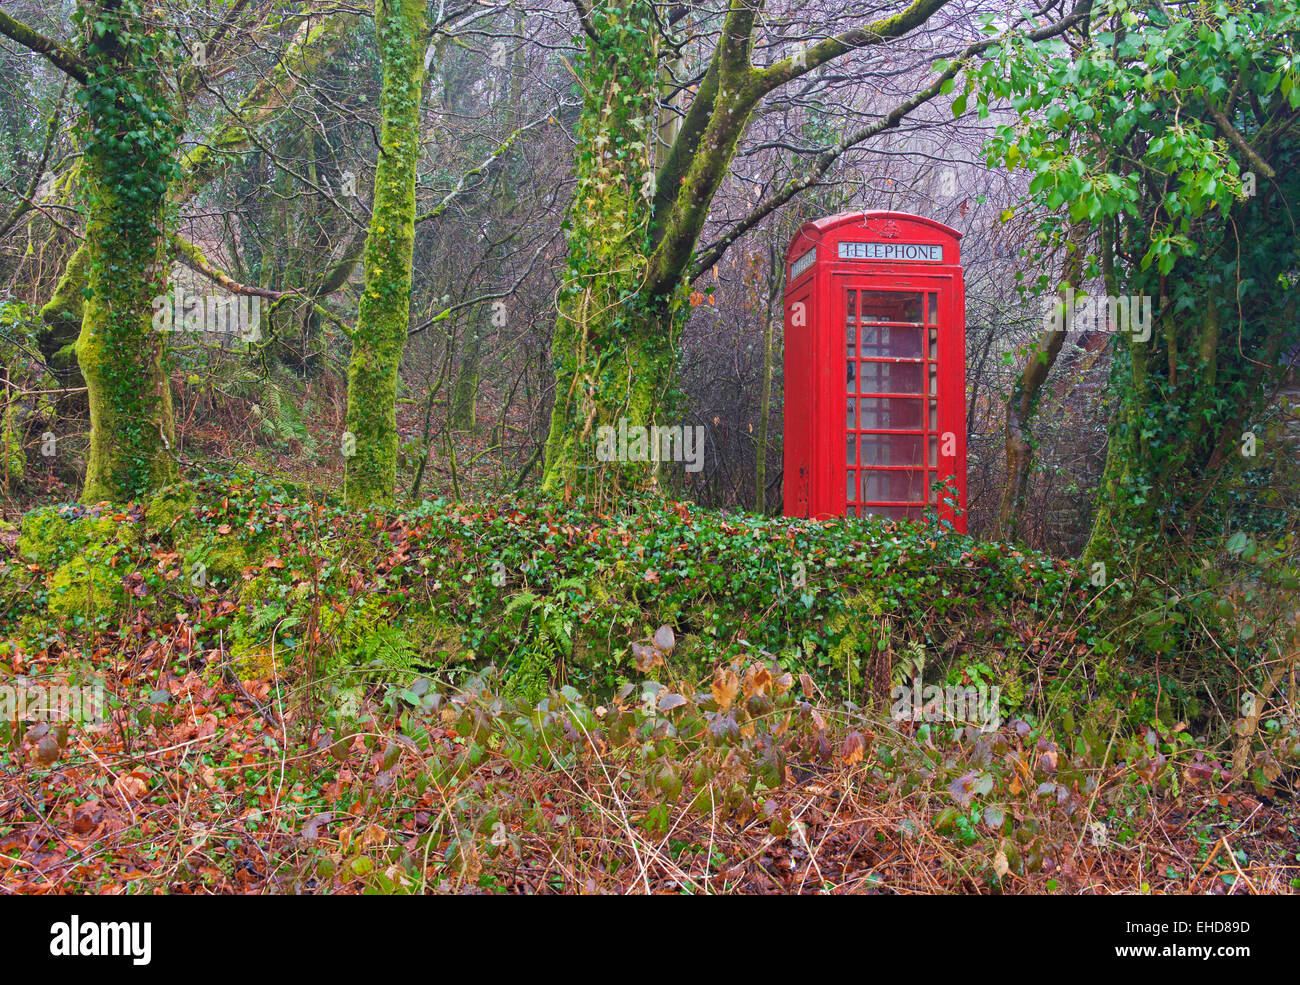 Red telephone box escaping into the wild, England UK - Stock Image